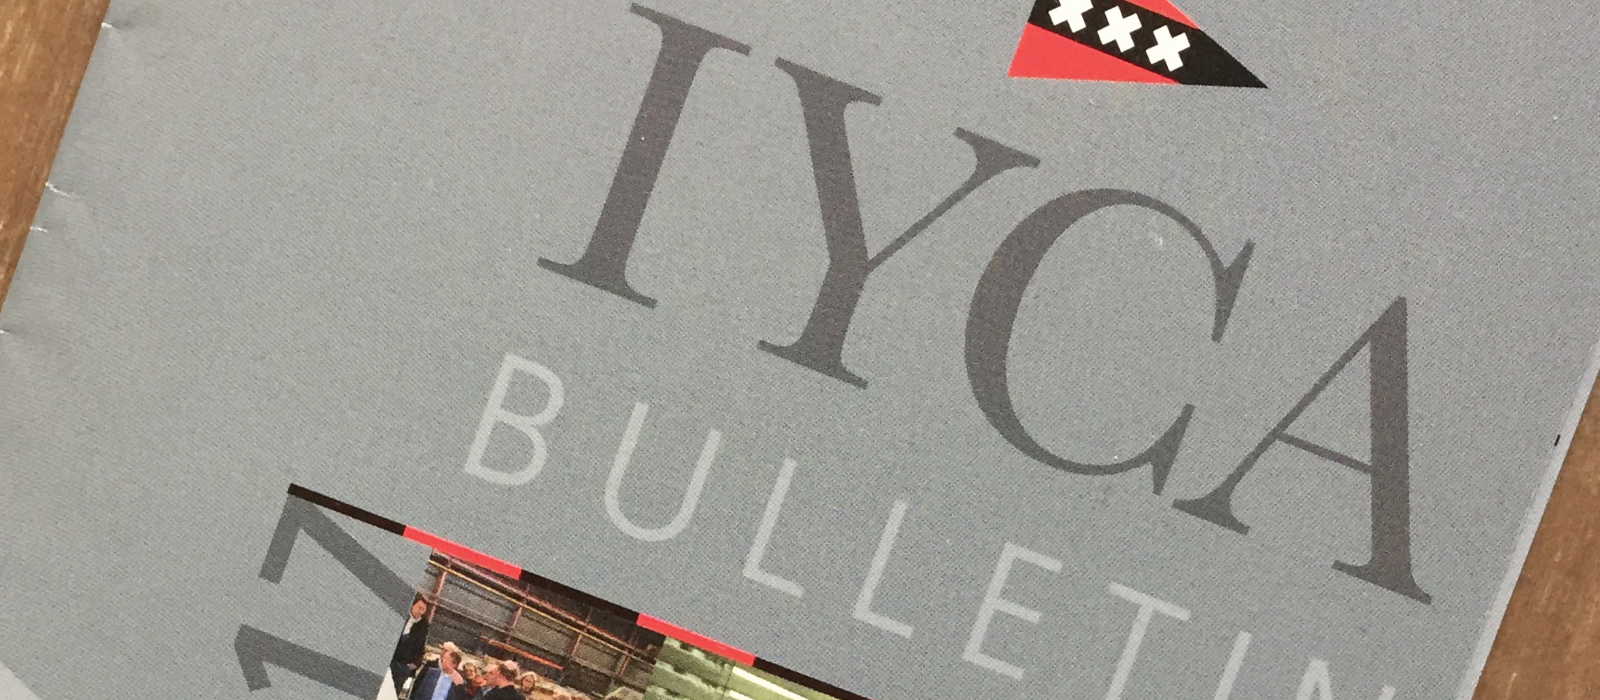 blog_bulleting_IYCA